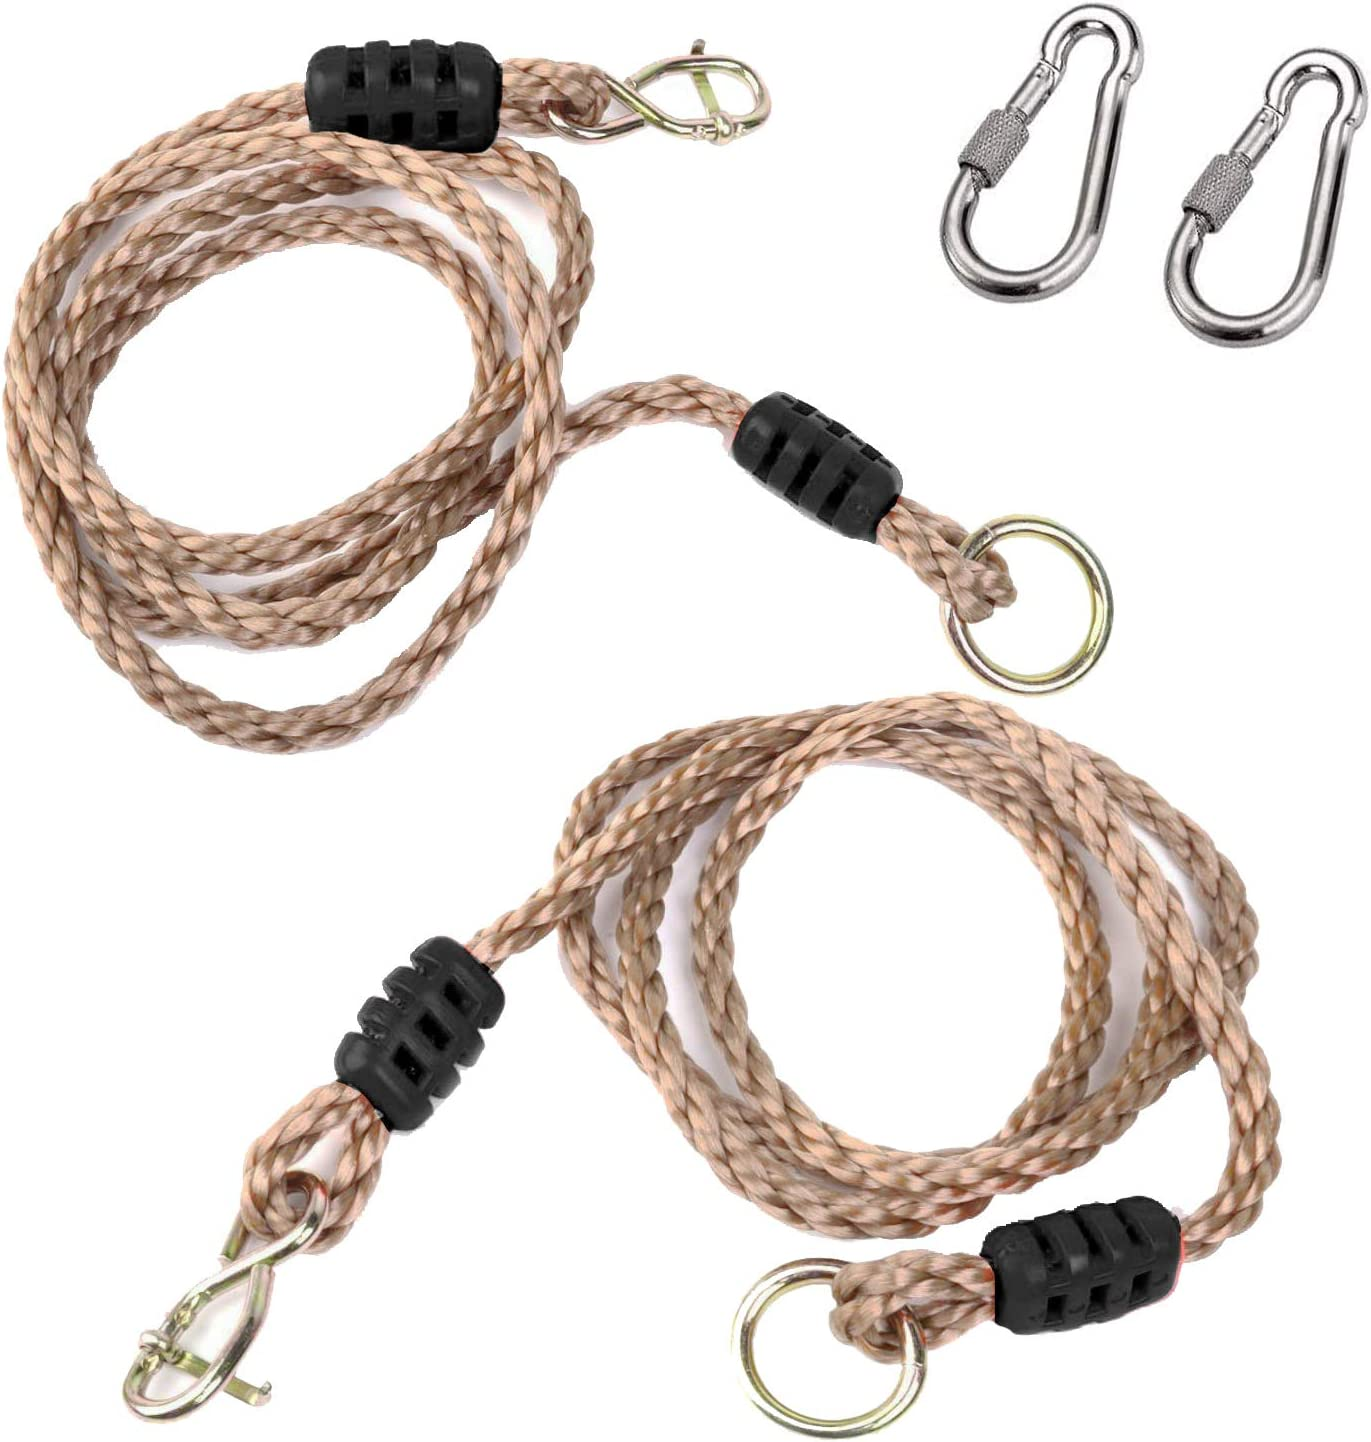 A AIFAMY Tree Swing, Adjustable Hammock Hangings Safer Nylon Rope,Tree Swing Hanging Strap Kit, Holds Up to 650 Lbs, 6 Feet, Pack of 2